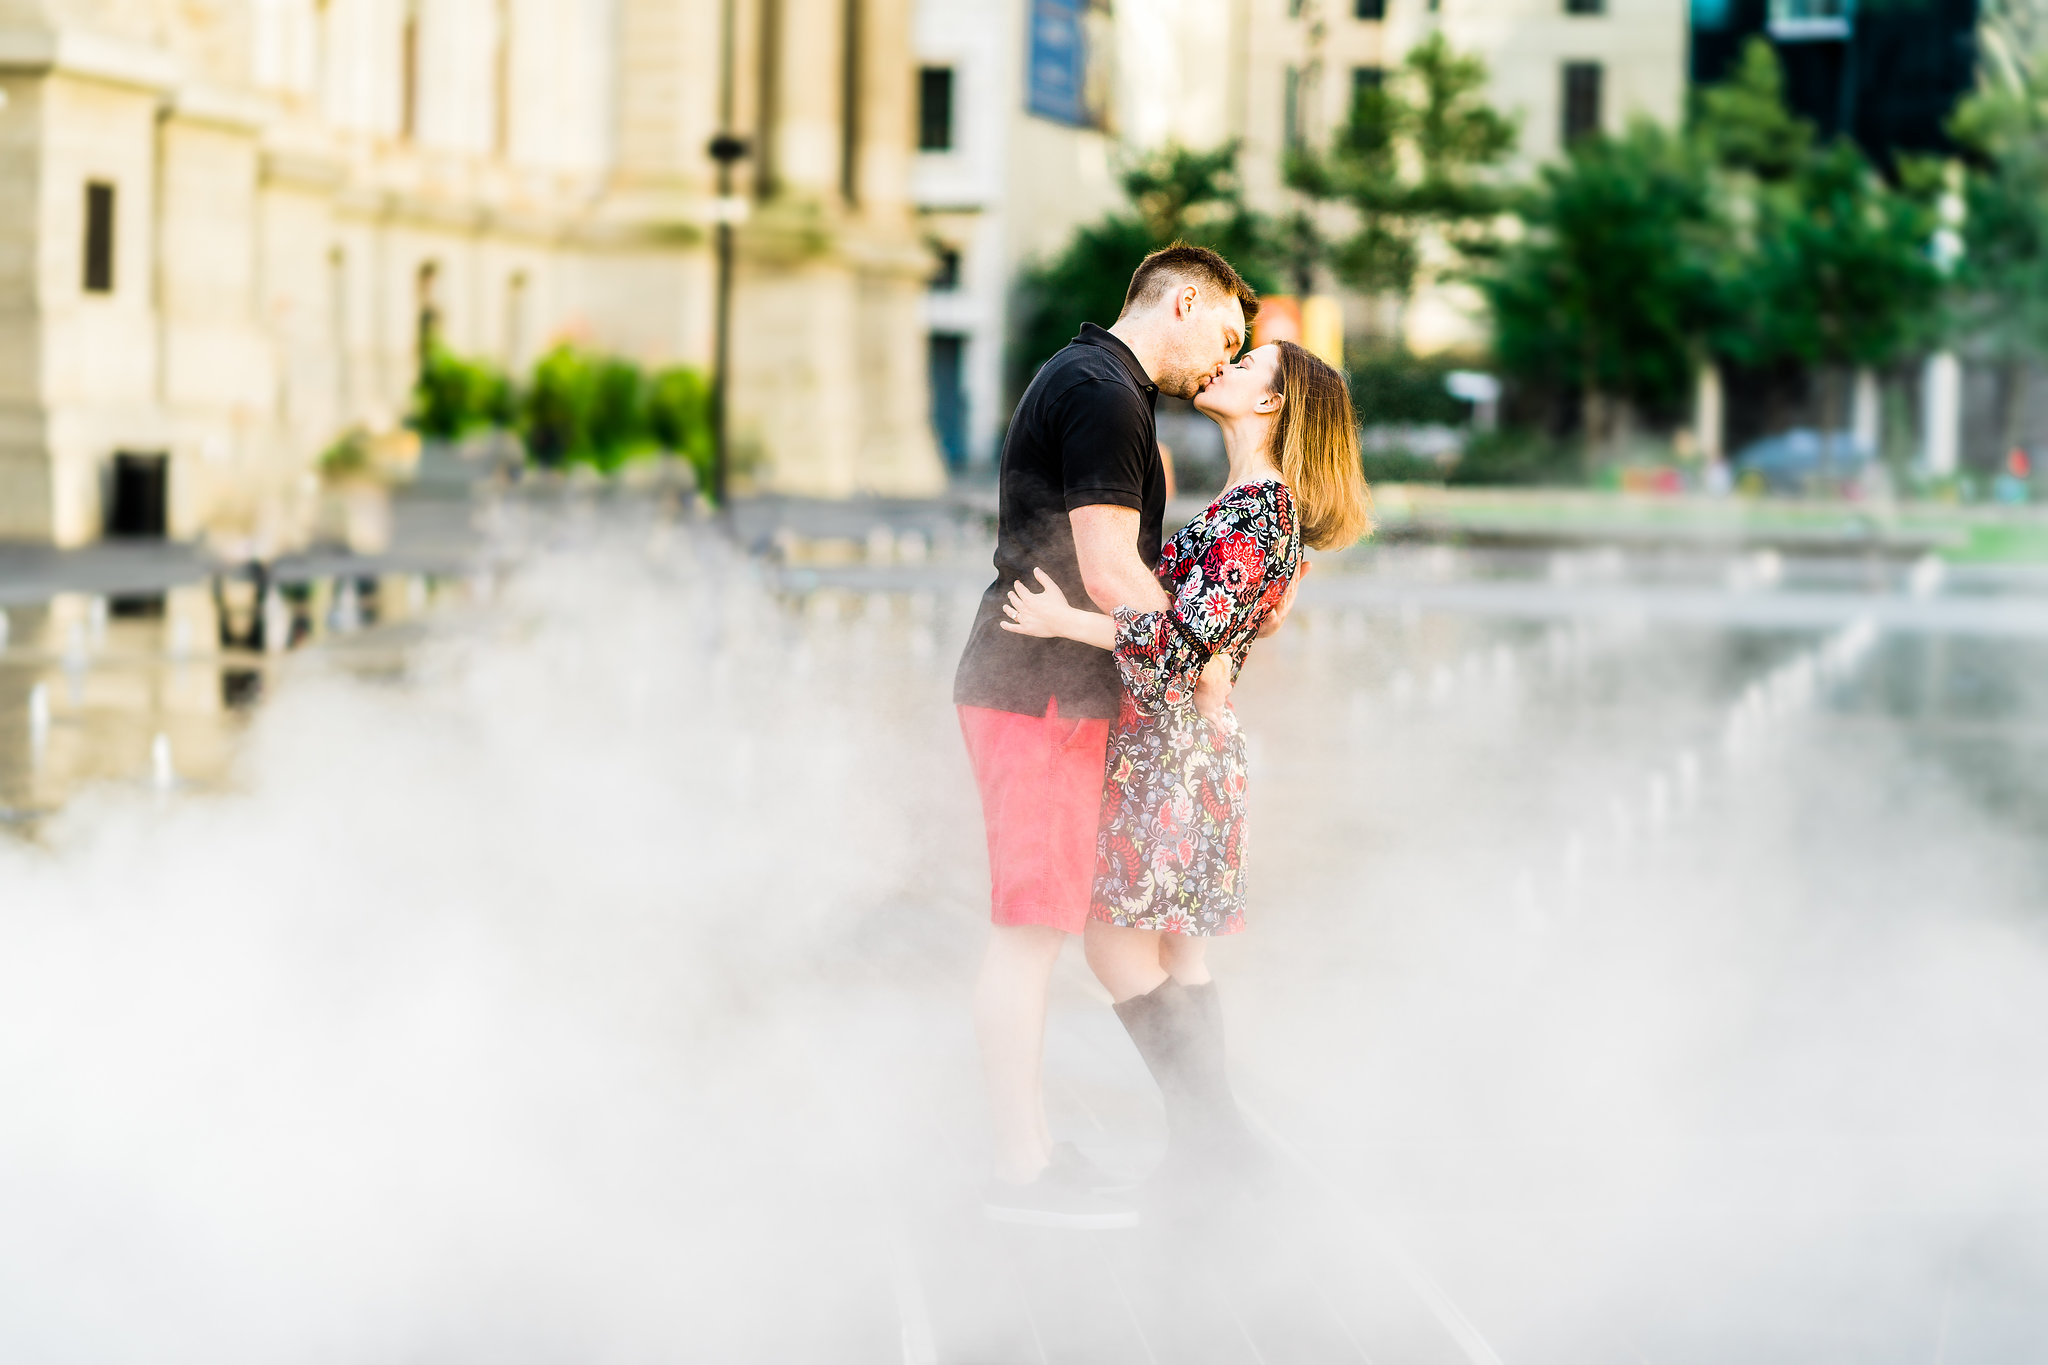 dilworth park engagement photos